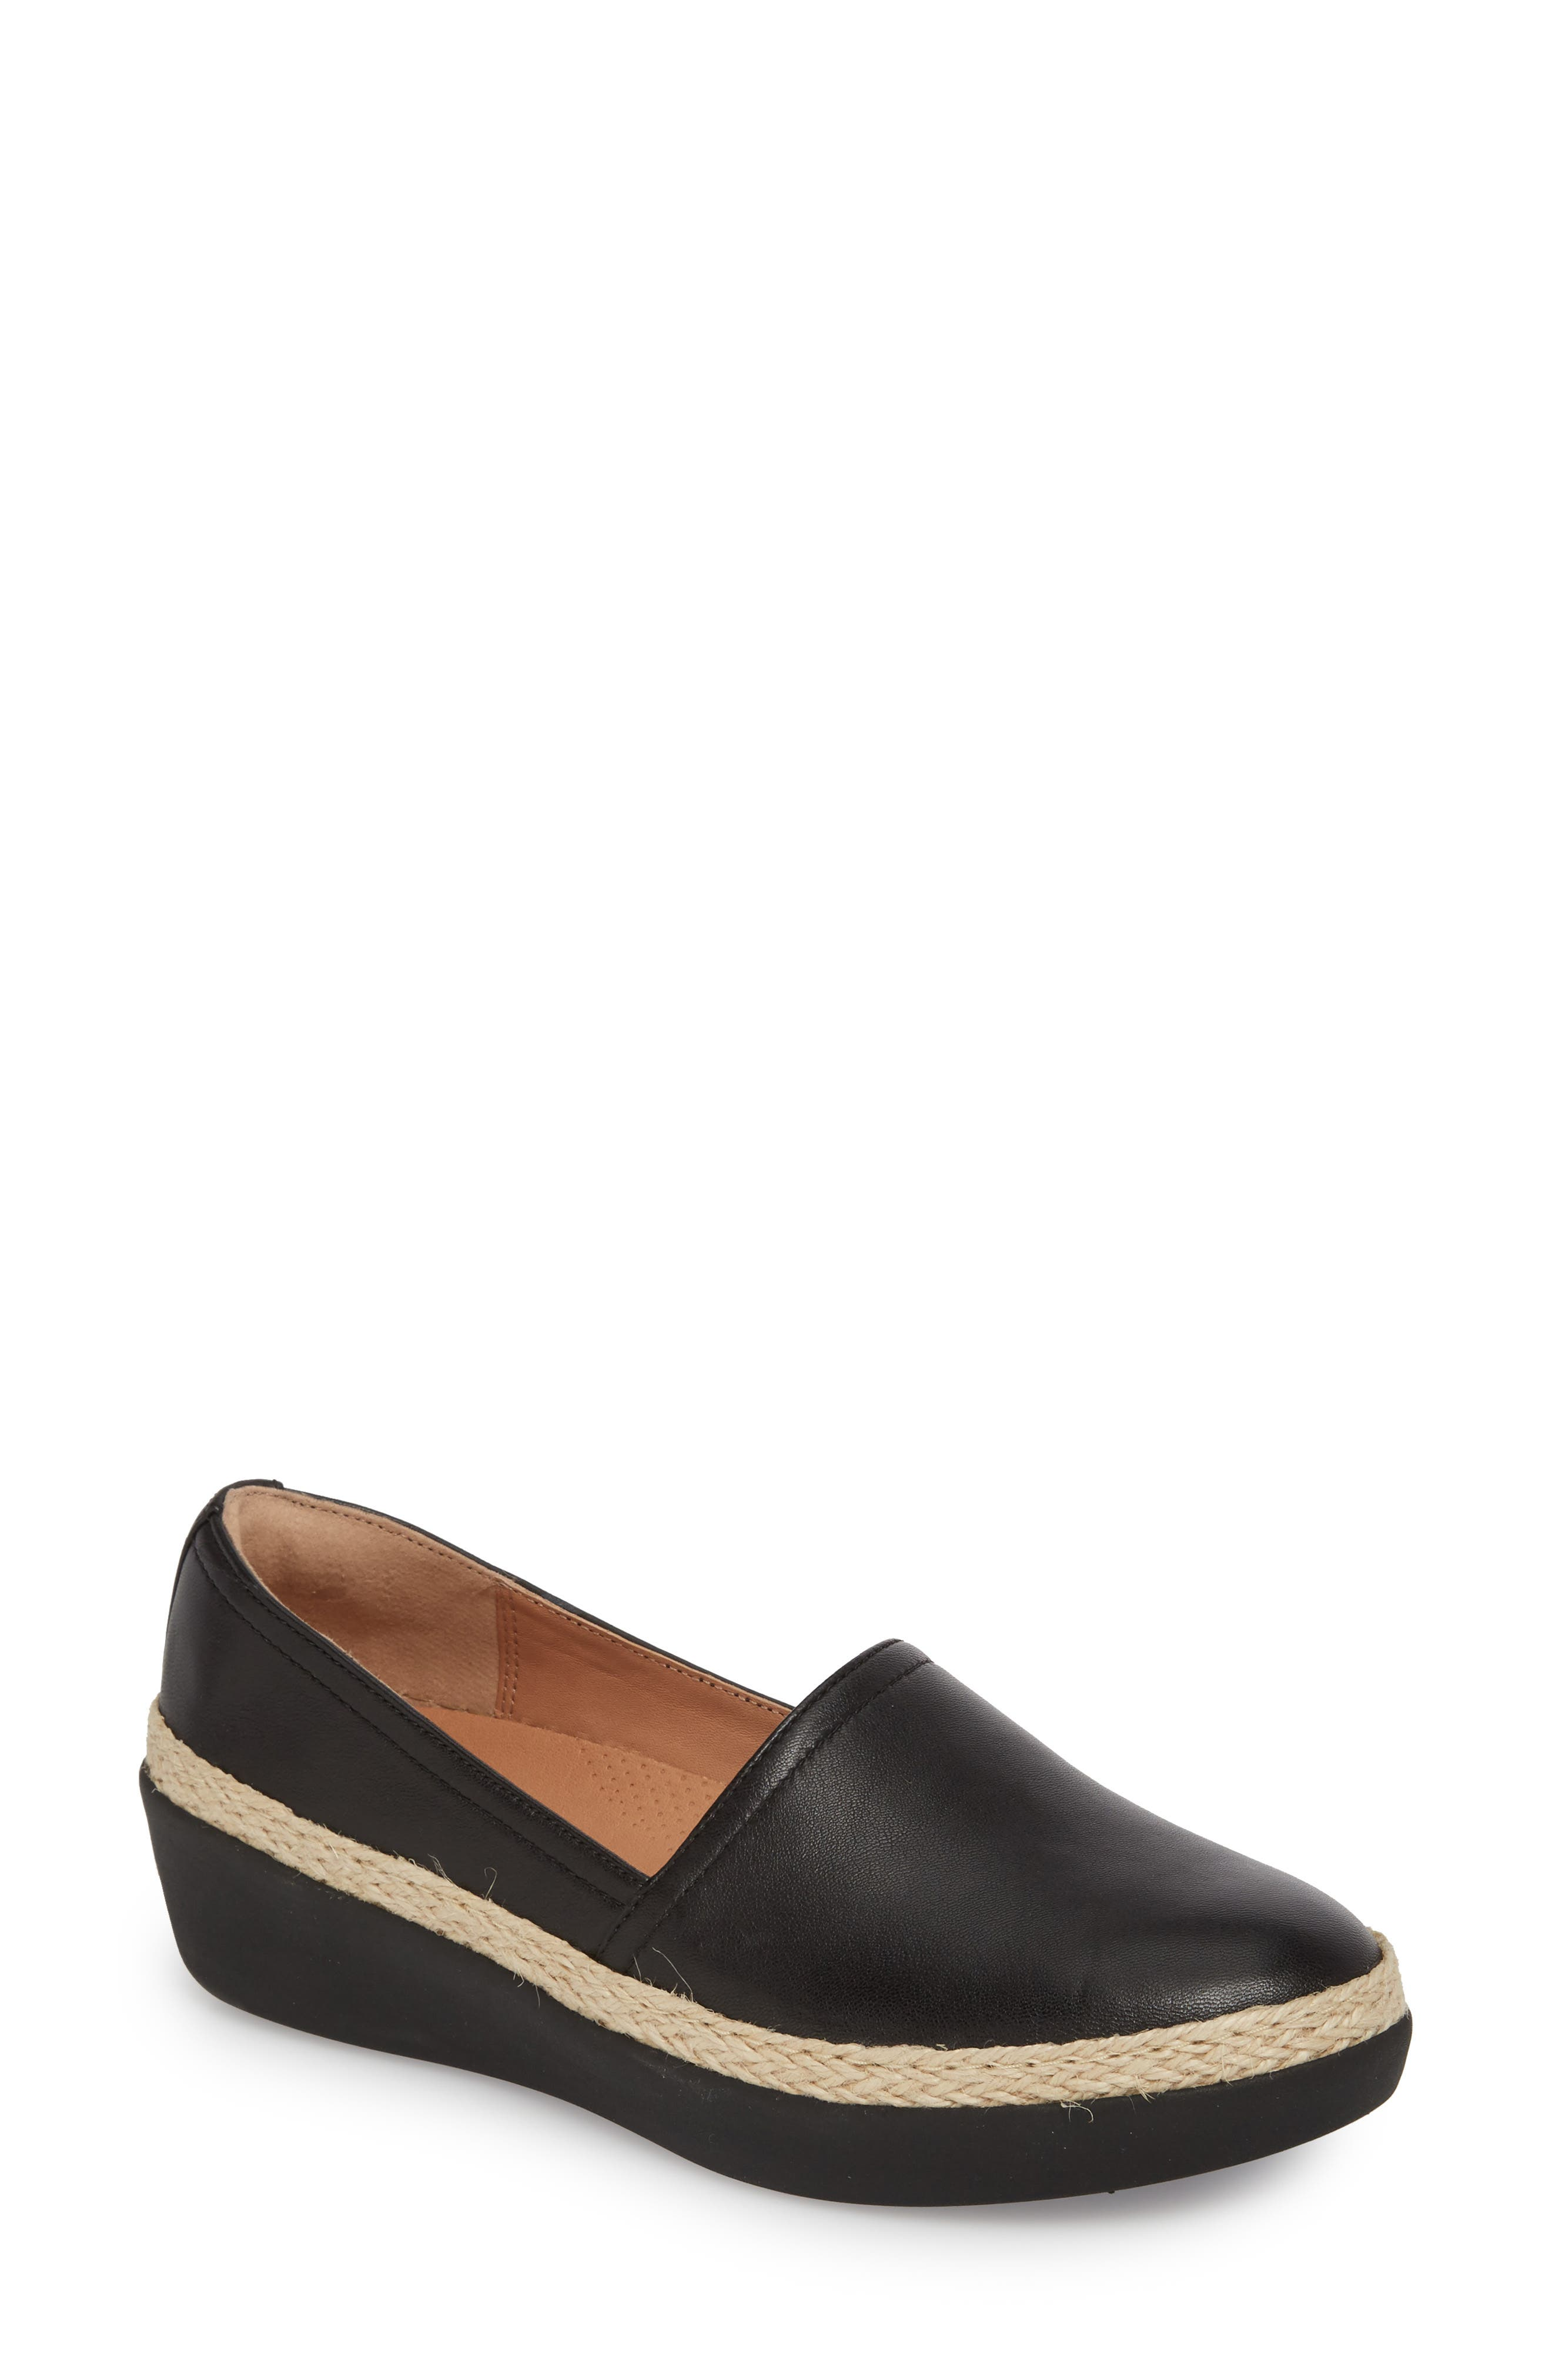 Casa Loafer,                             Main thumbnail 1, color,                             Black Leather